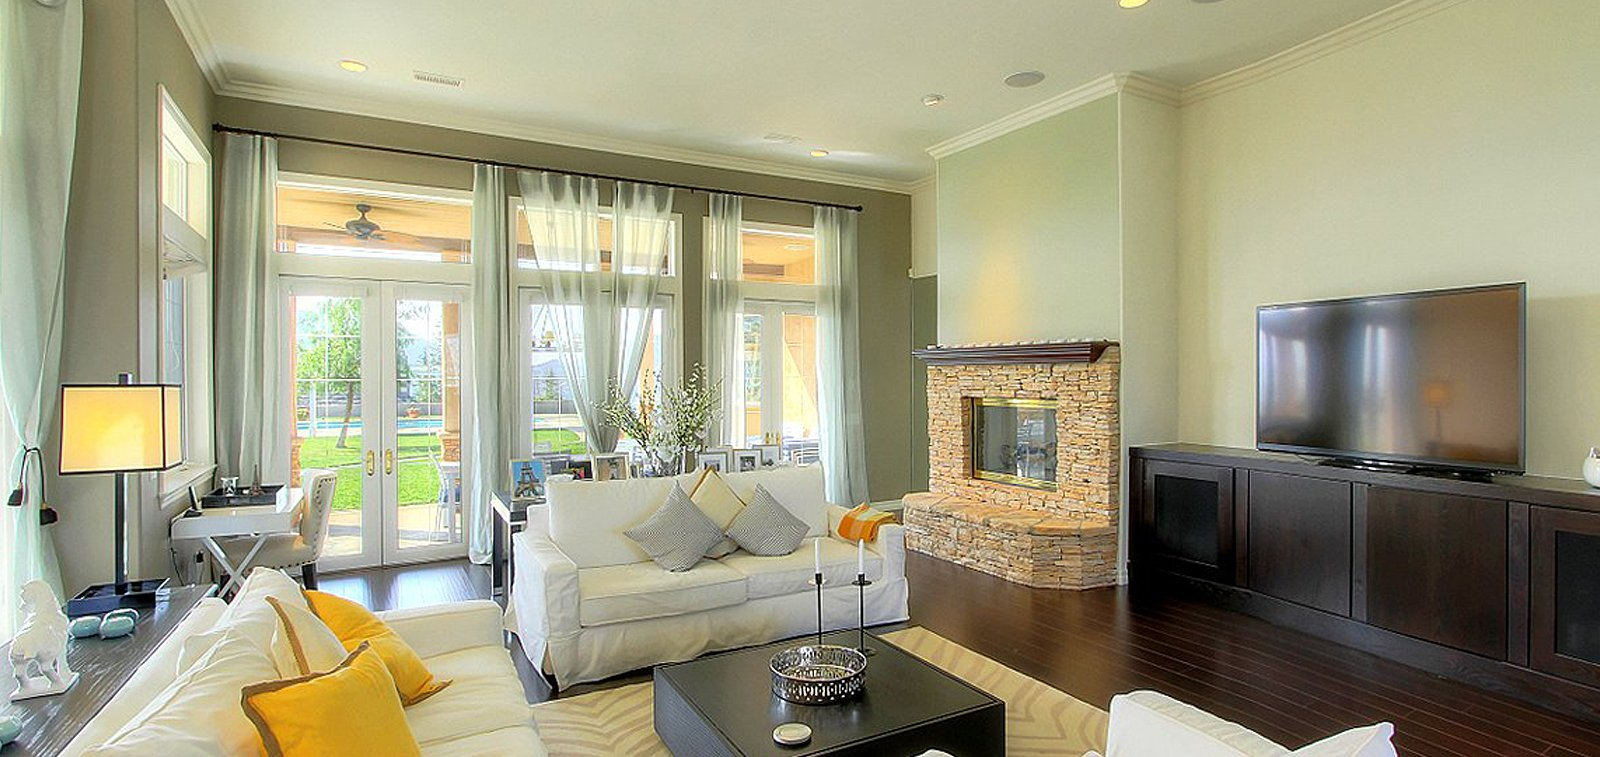 THE HENSLEY GROUP REAL ESTATE - white spacious living room